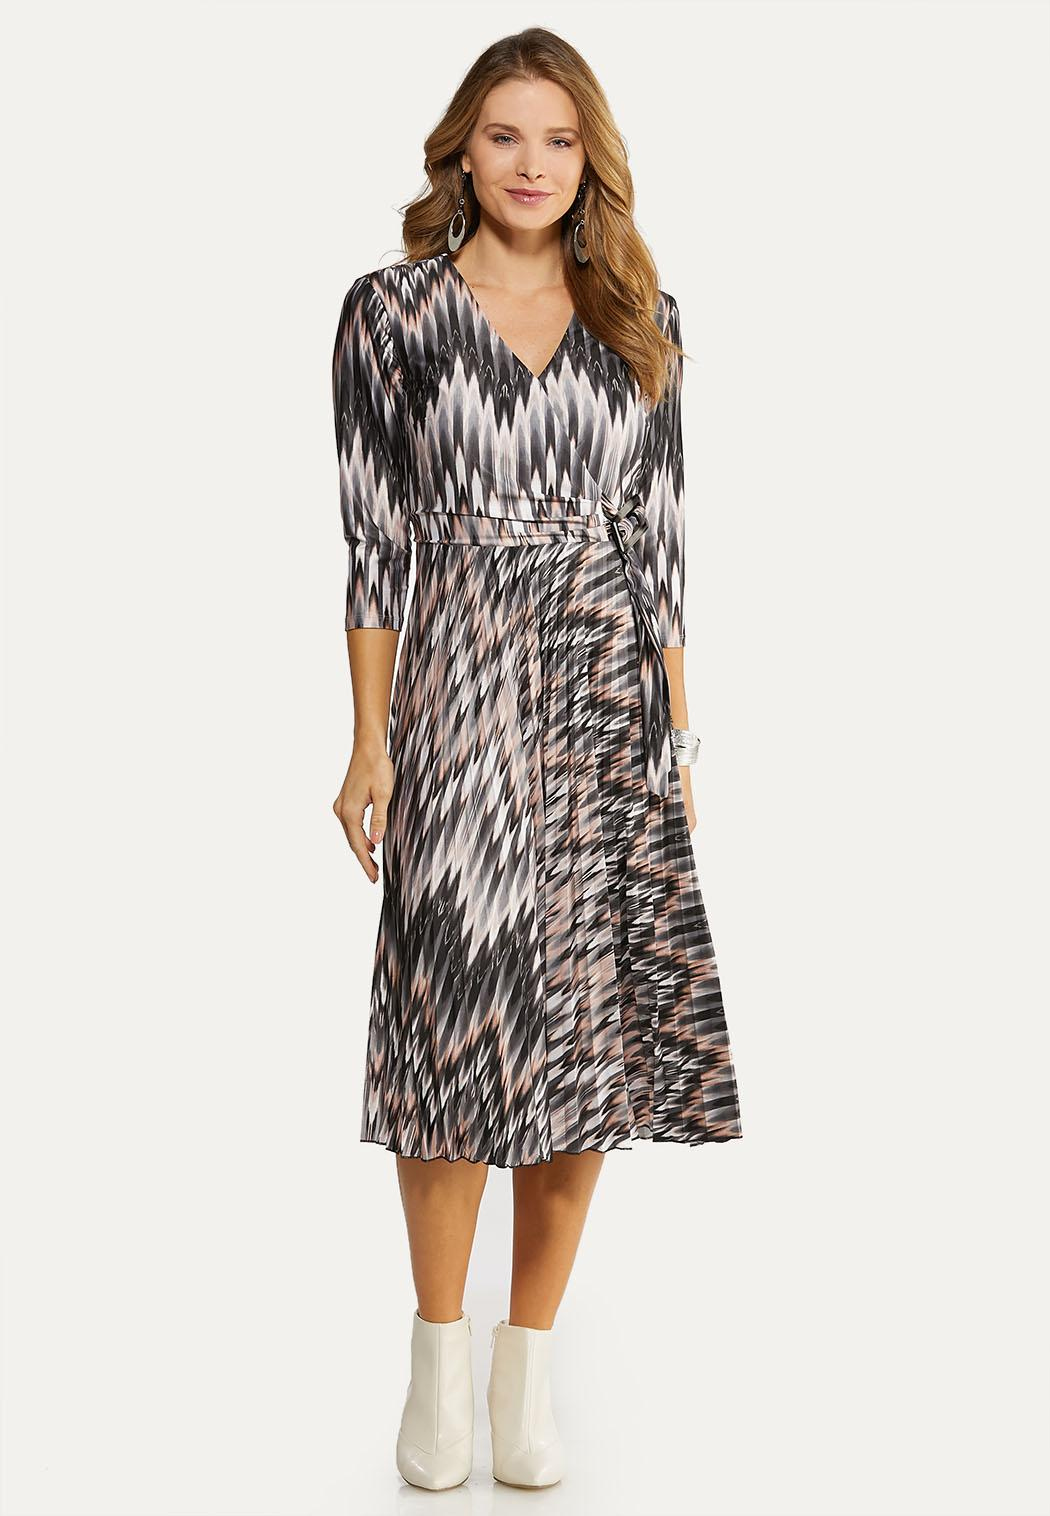 Silky Chevron Dress